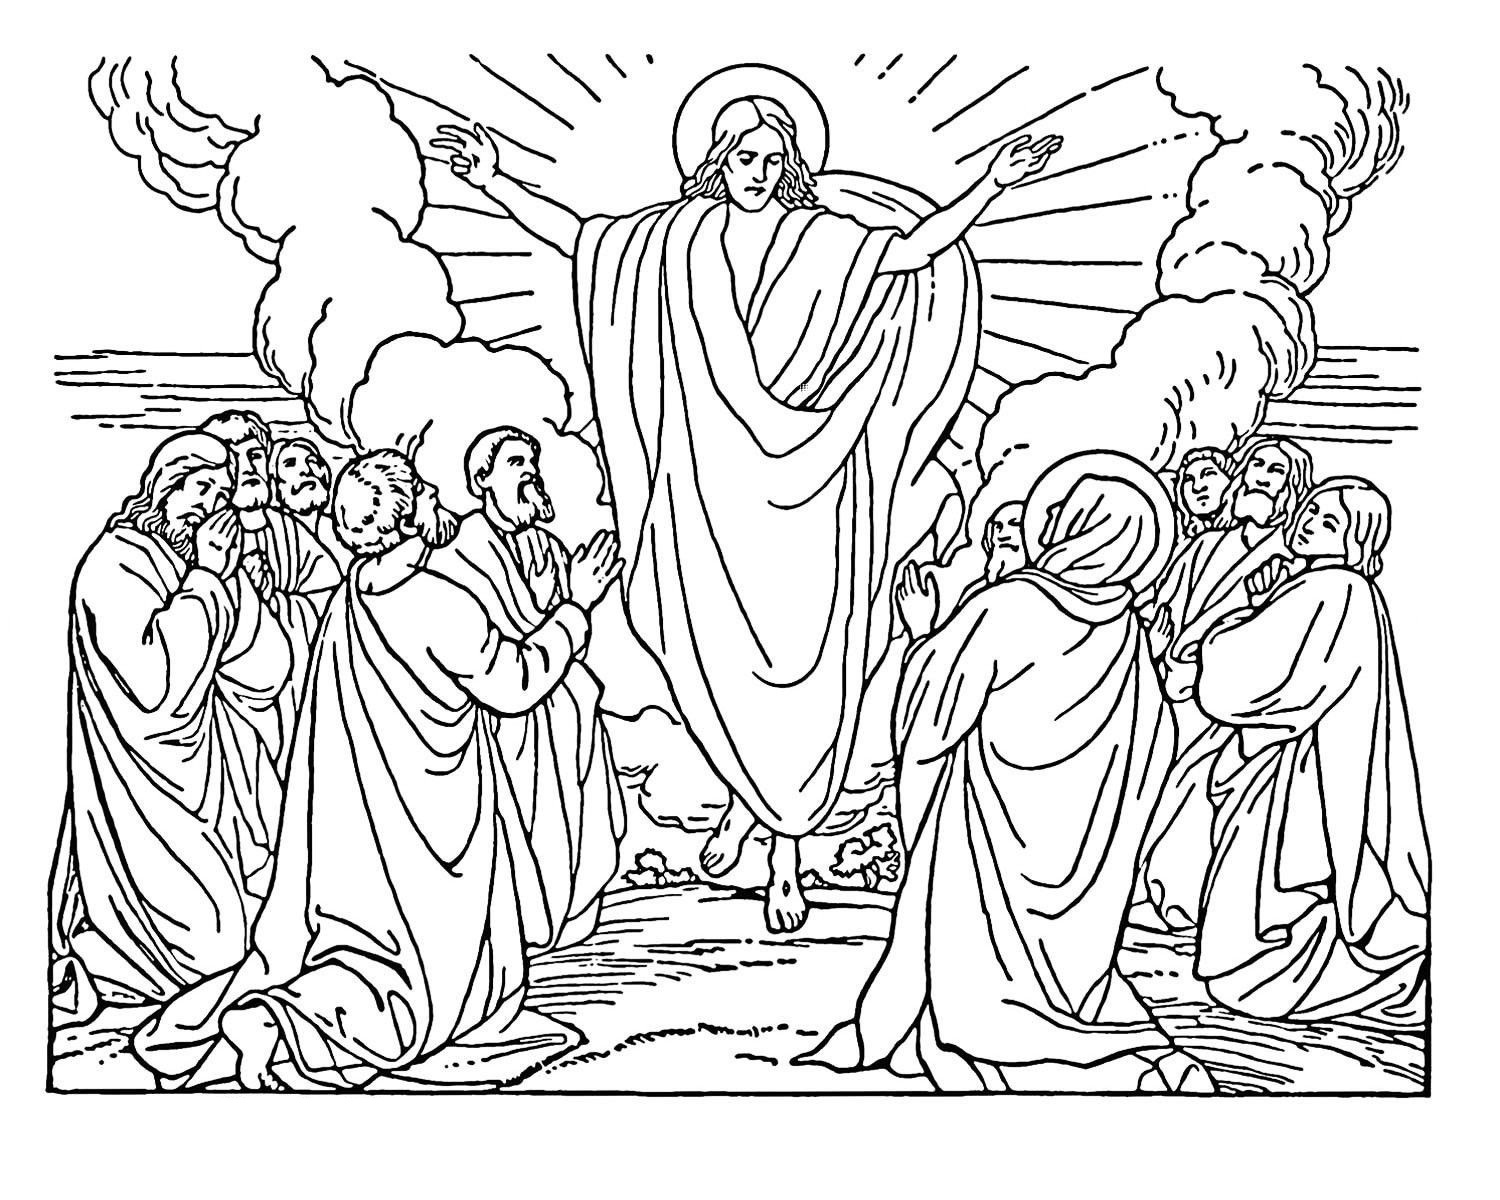 Free Printable Bible Coloring Pages For Kids Religious Coloring Pages For